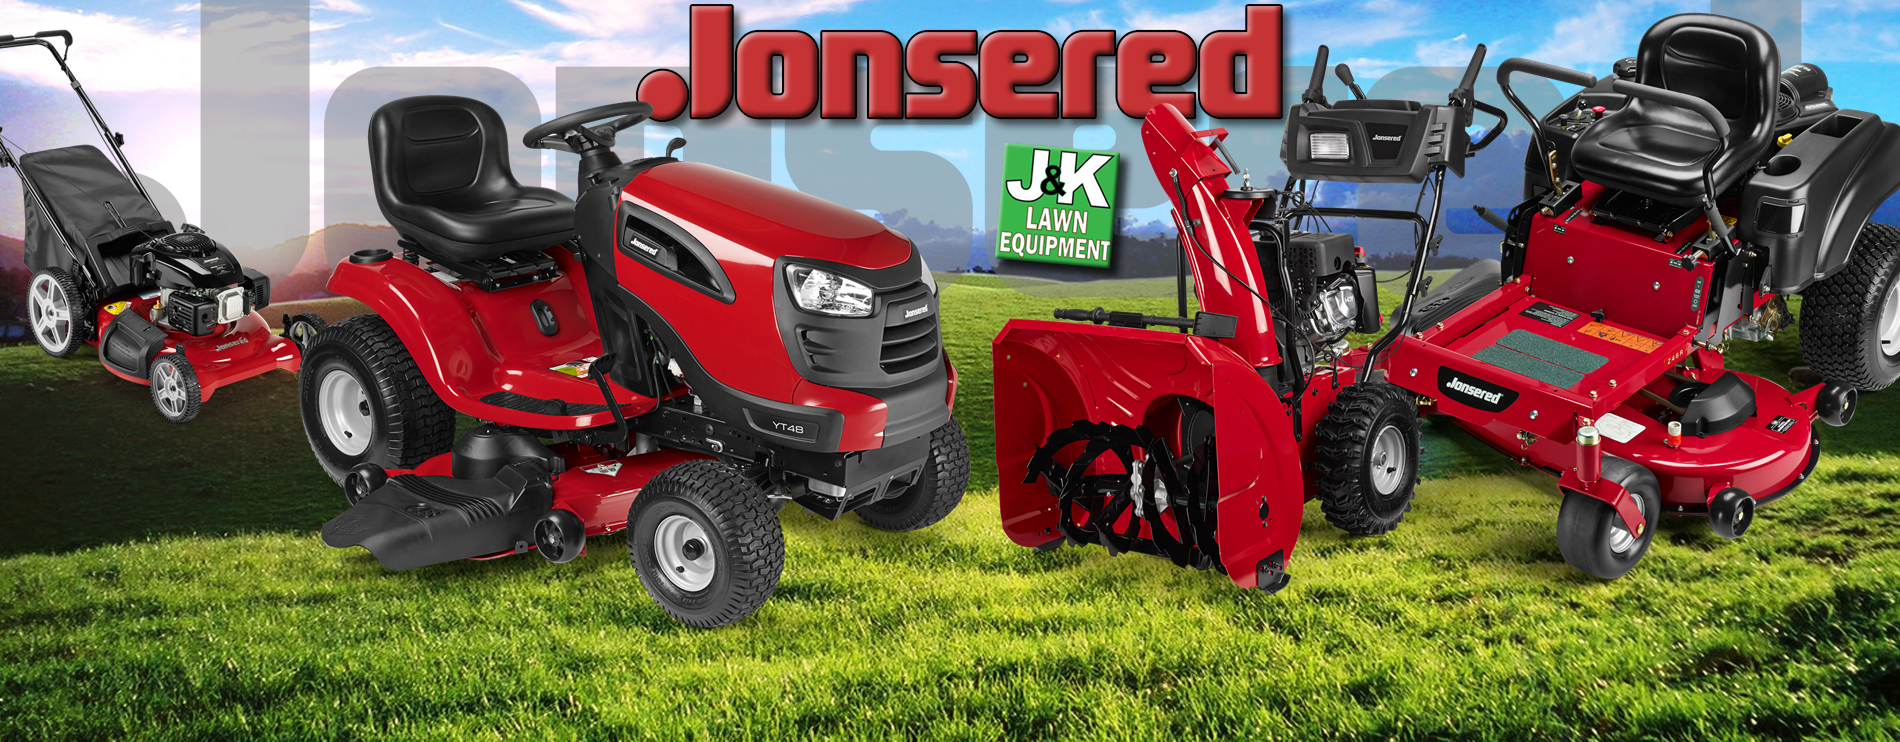 Jonsered Lawn Equipment, J and K Lawn Equipment